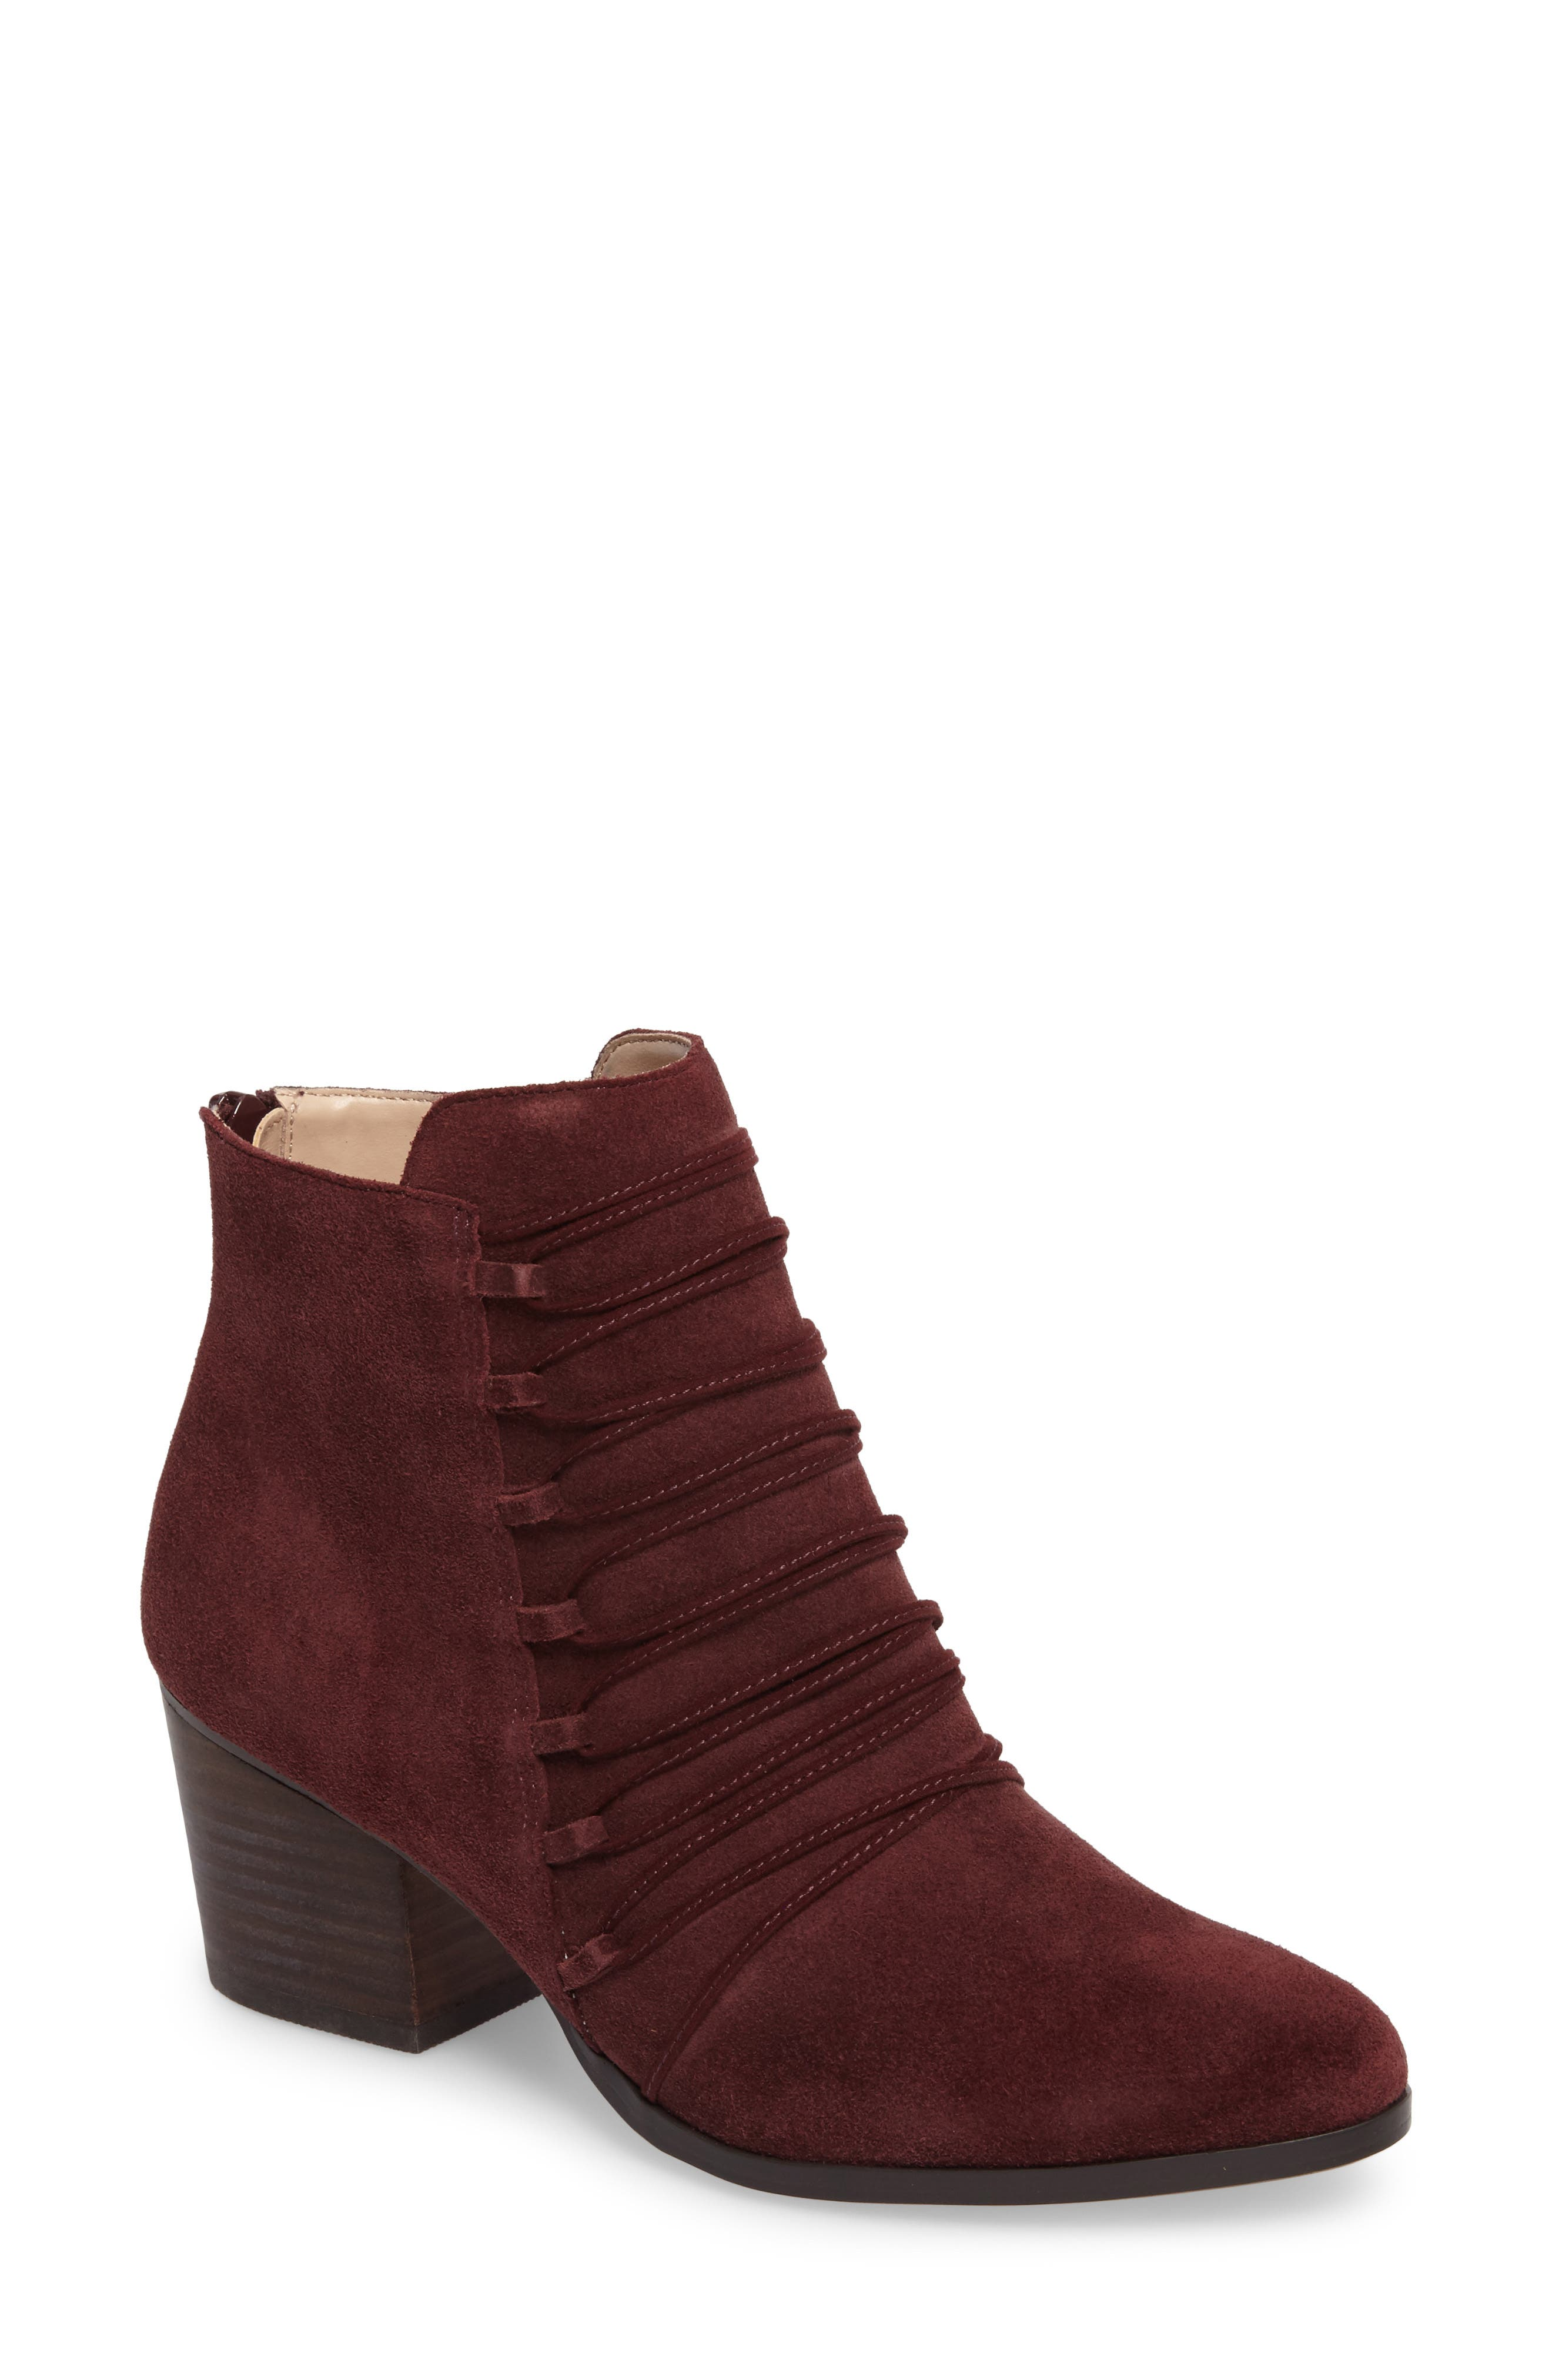 Bellevue Bootie,                         Main,                         color, 930